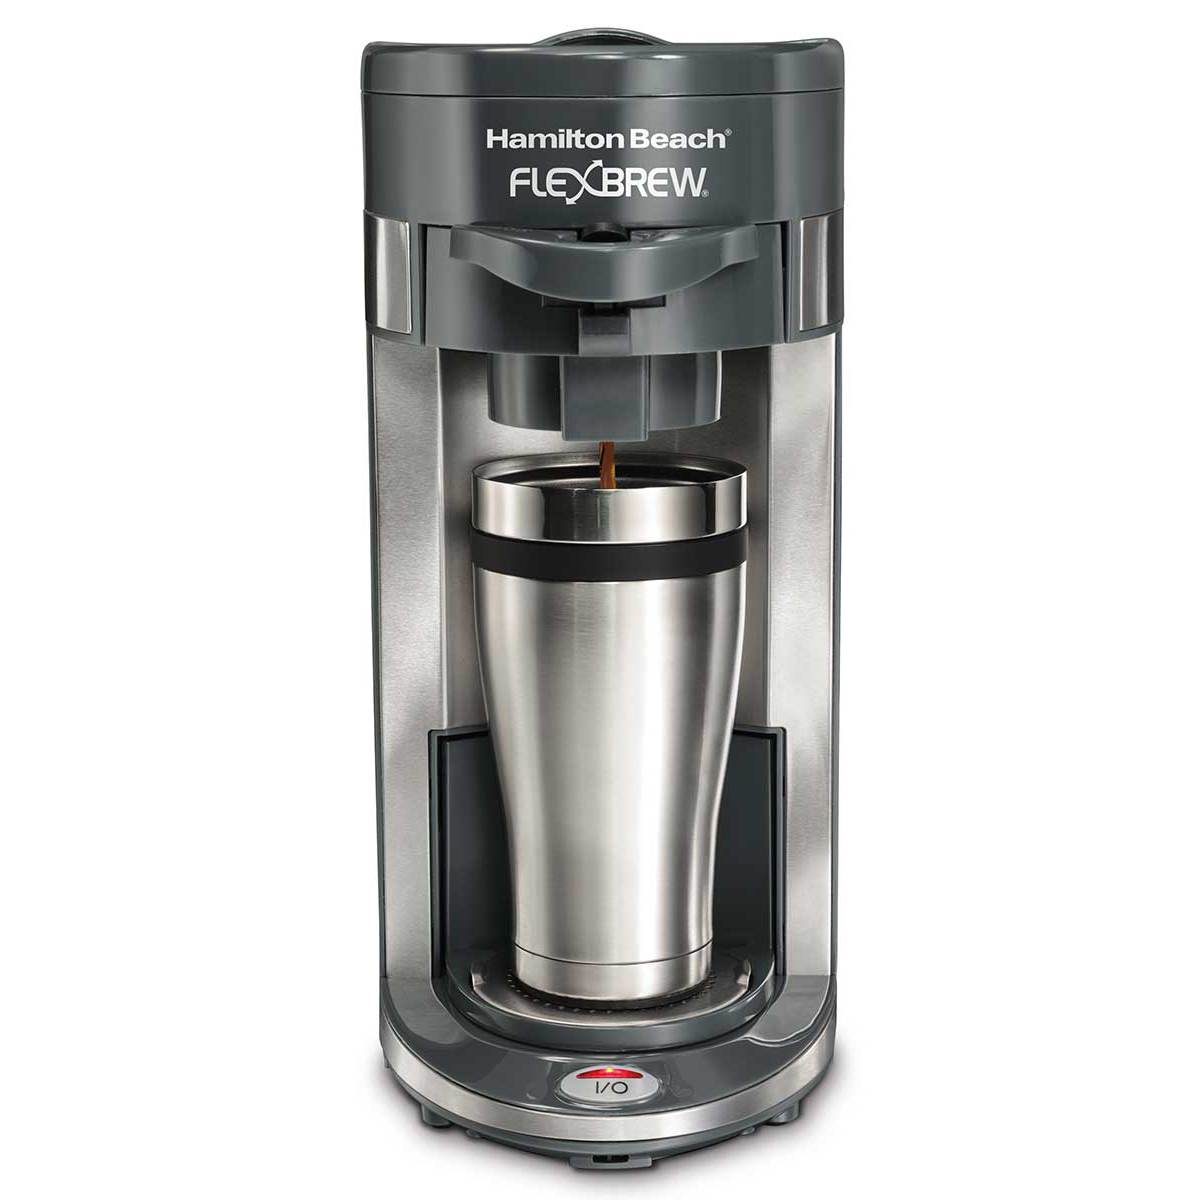 FlexBrew® Single-Serve Coffee Maker - Gray (49963)